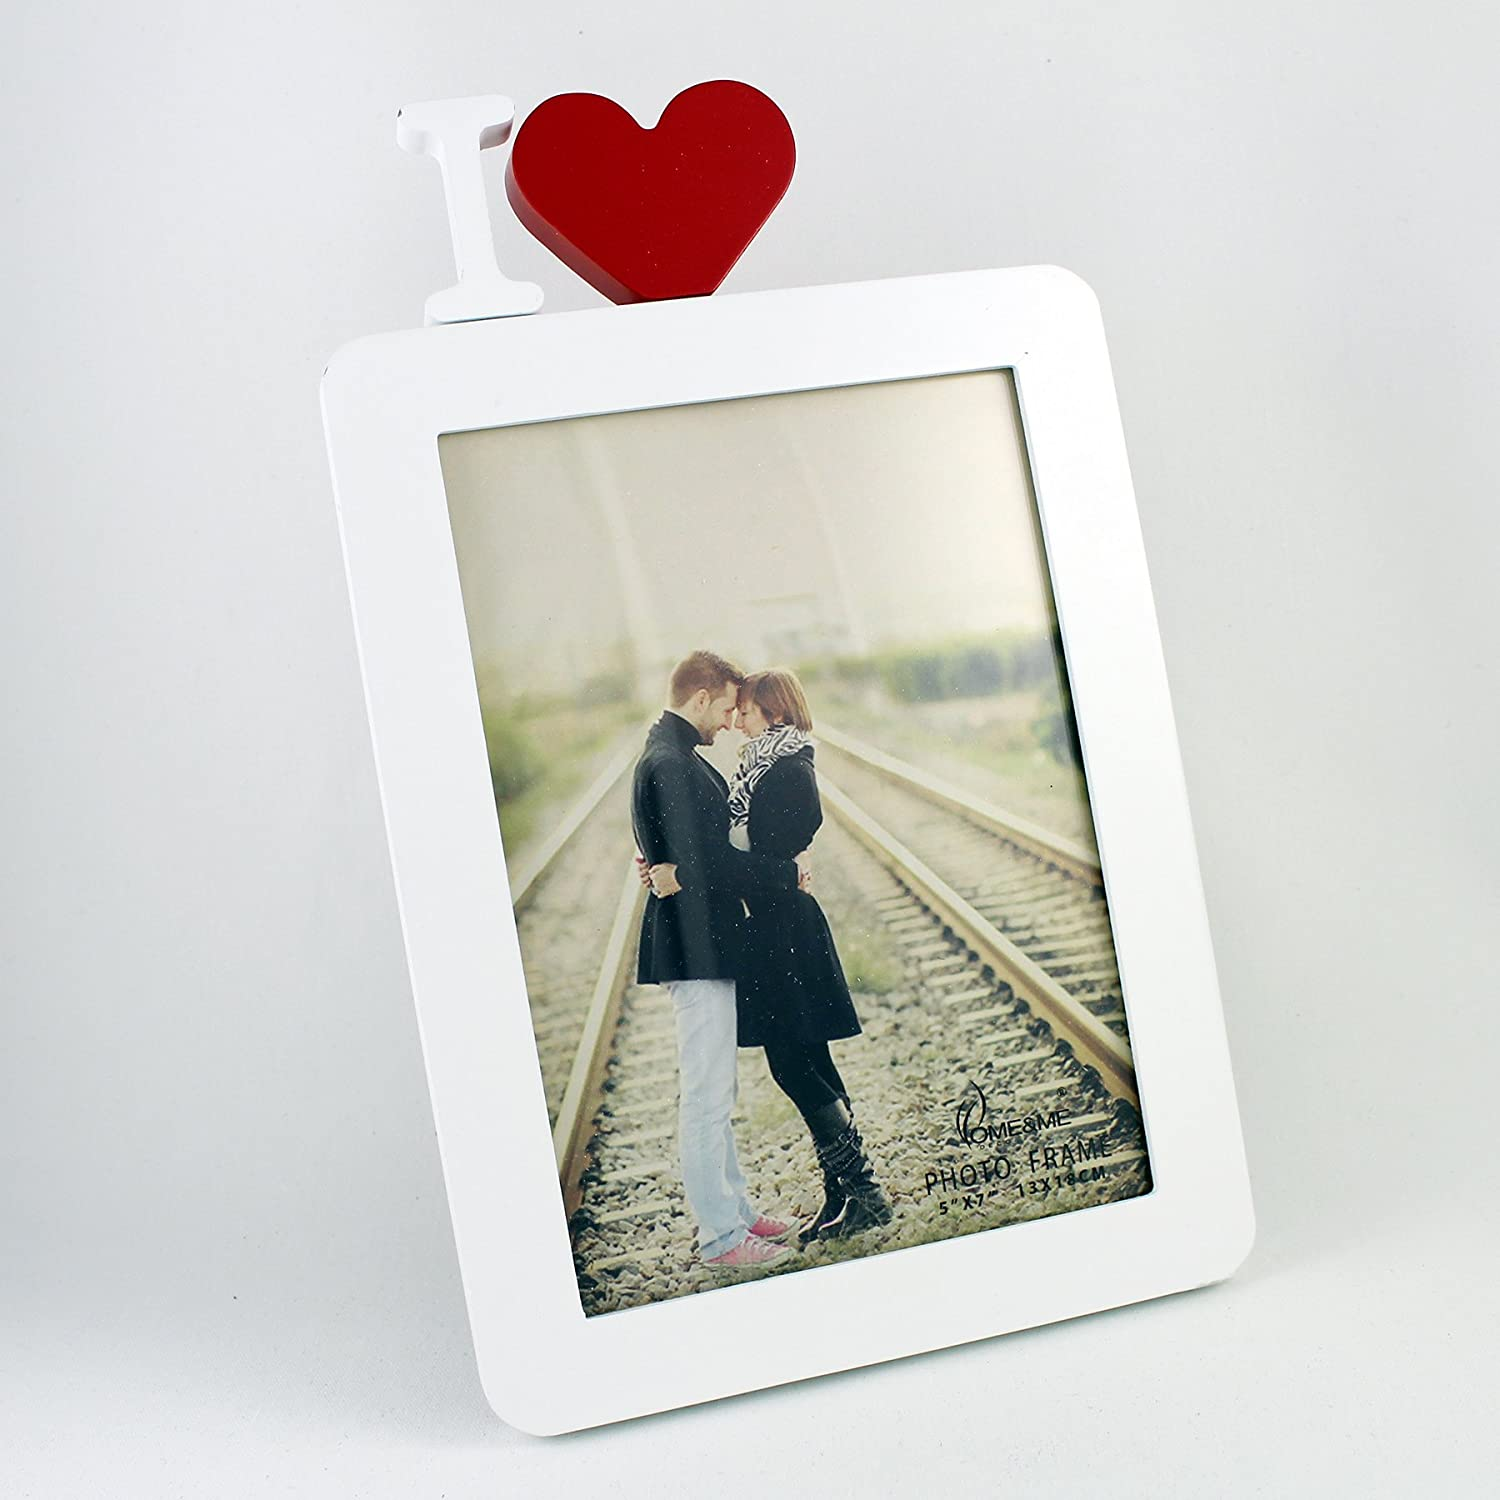 Amazon 5x7 wooden photo frame in white with i heart in red amazon 5x7 wooden photo frame in white with i heart in red i love you contemporary valentines day mothers day birthday or anniversary style jeuxipadfo Choice Image